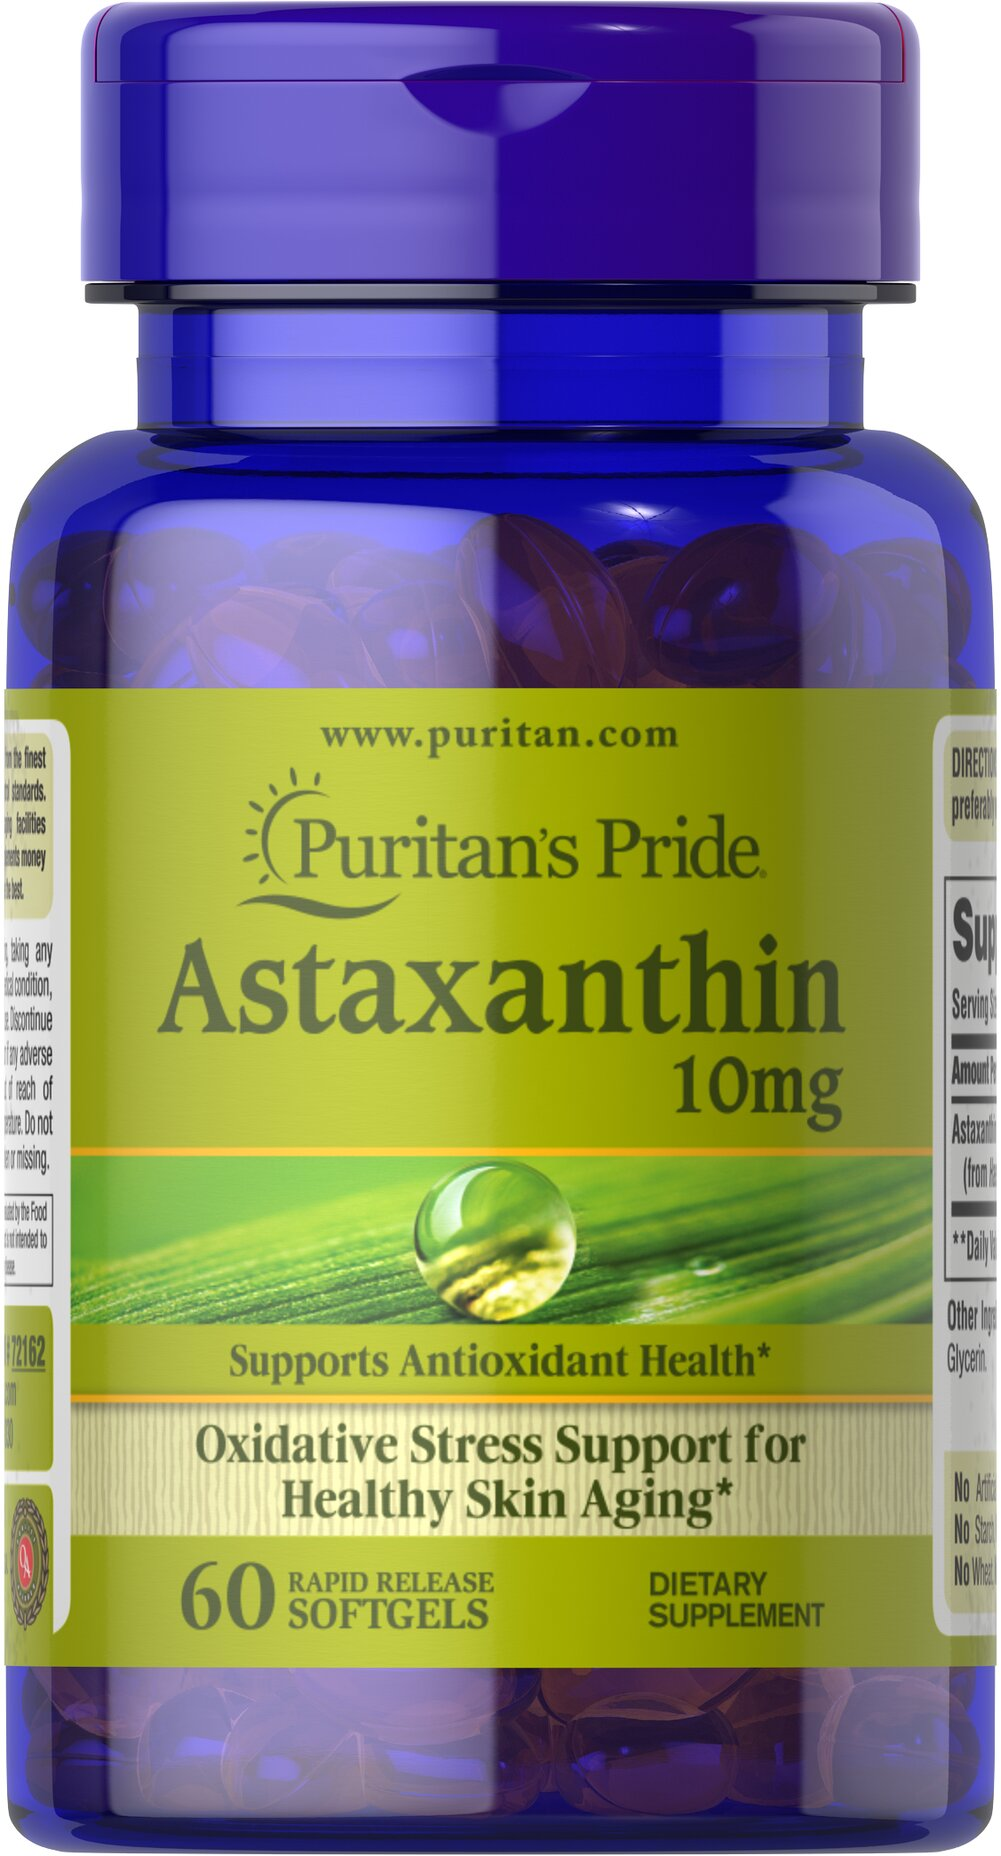 Natural Astaxanthin 10 mg <p>Powerful Antioxidant**</p><p>Suited for Stressful Lifestyles**</p><p>Astaxanthin promotes antioxidant health, which helps fight the cell damaging free radicals that can lead to oxidative stress which may contribute to the premature aging of cells.**</p> 60 Softgels 10 mg $73.99